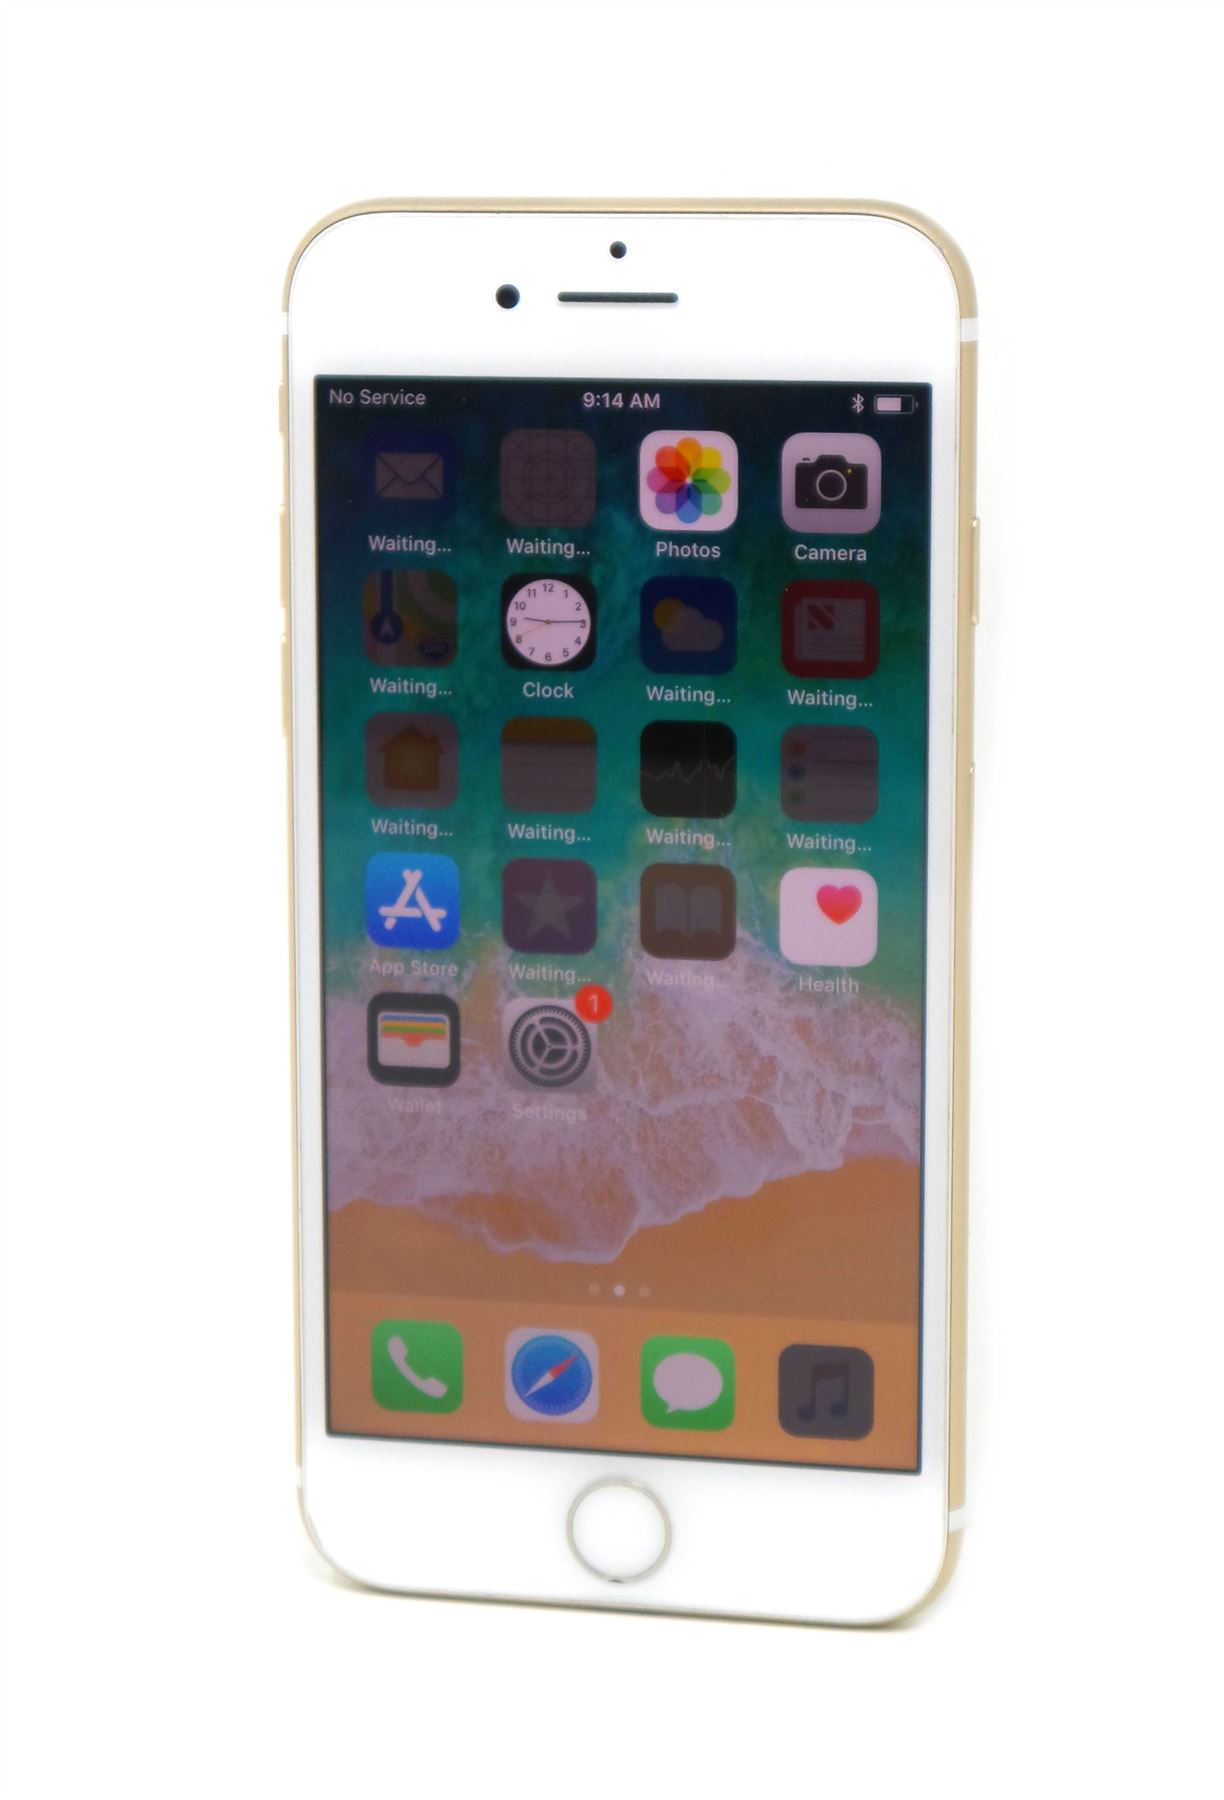 Apple-iPhone-7-32GB-GSM-Unlocked-AT-amp-T-T-Mobile-All-Colors-Available